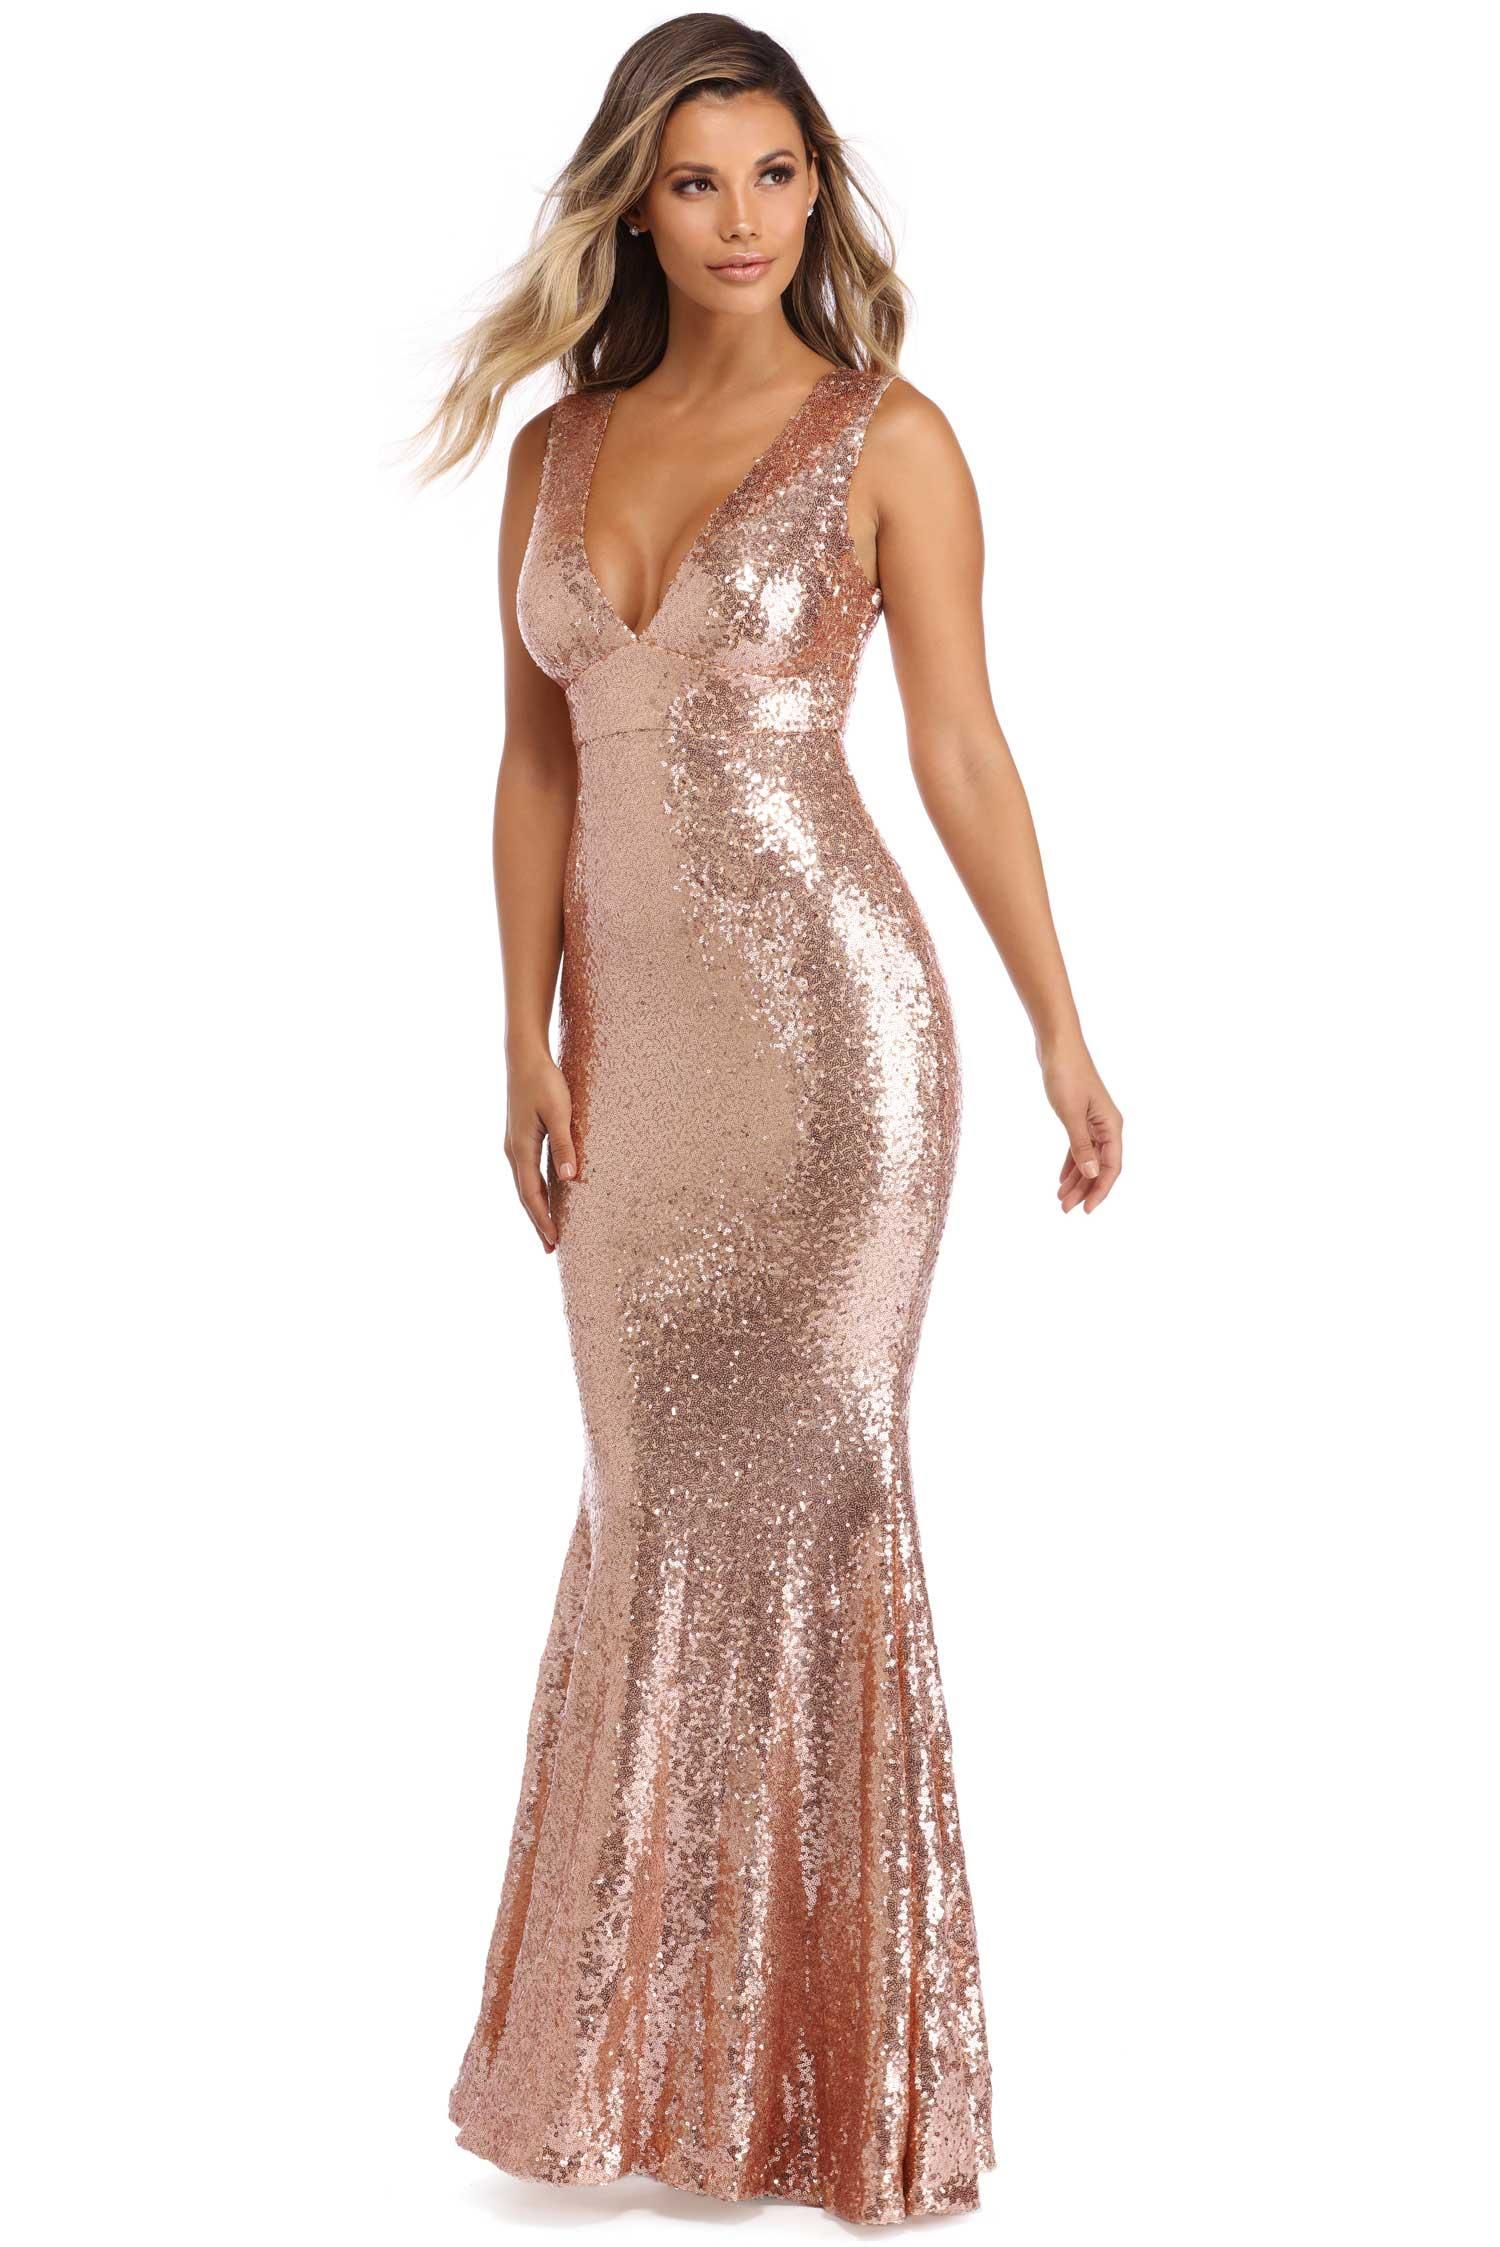 Cassidy rose gold sequin mermaid dress bridesmaids dresses